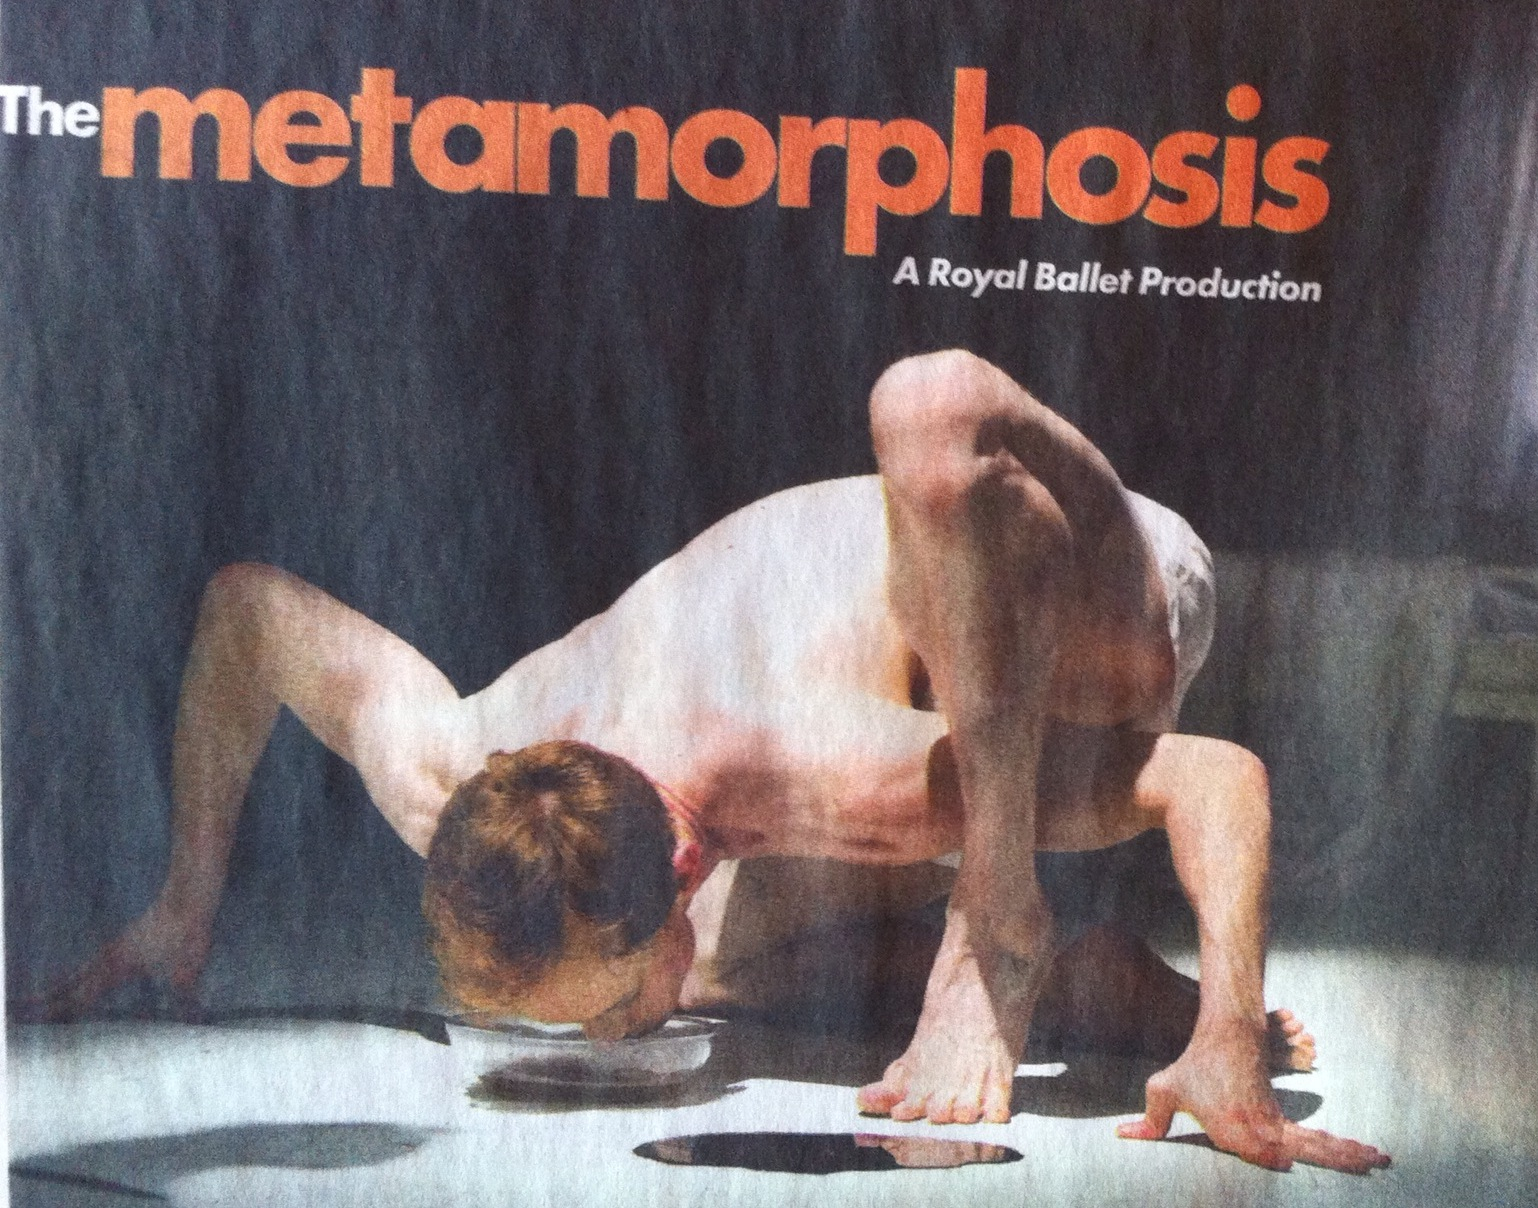 Image for The Metamorphosis ballet by the Royal Ballet reminded my of one of my yoga classes. Seriously this capture my imagination immediately as I flaneured the paper.